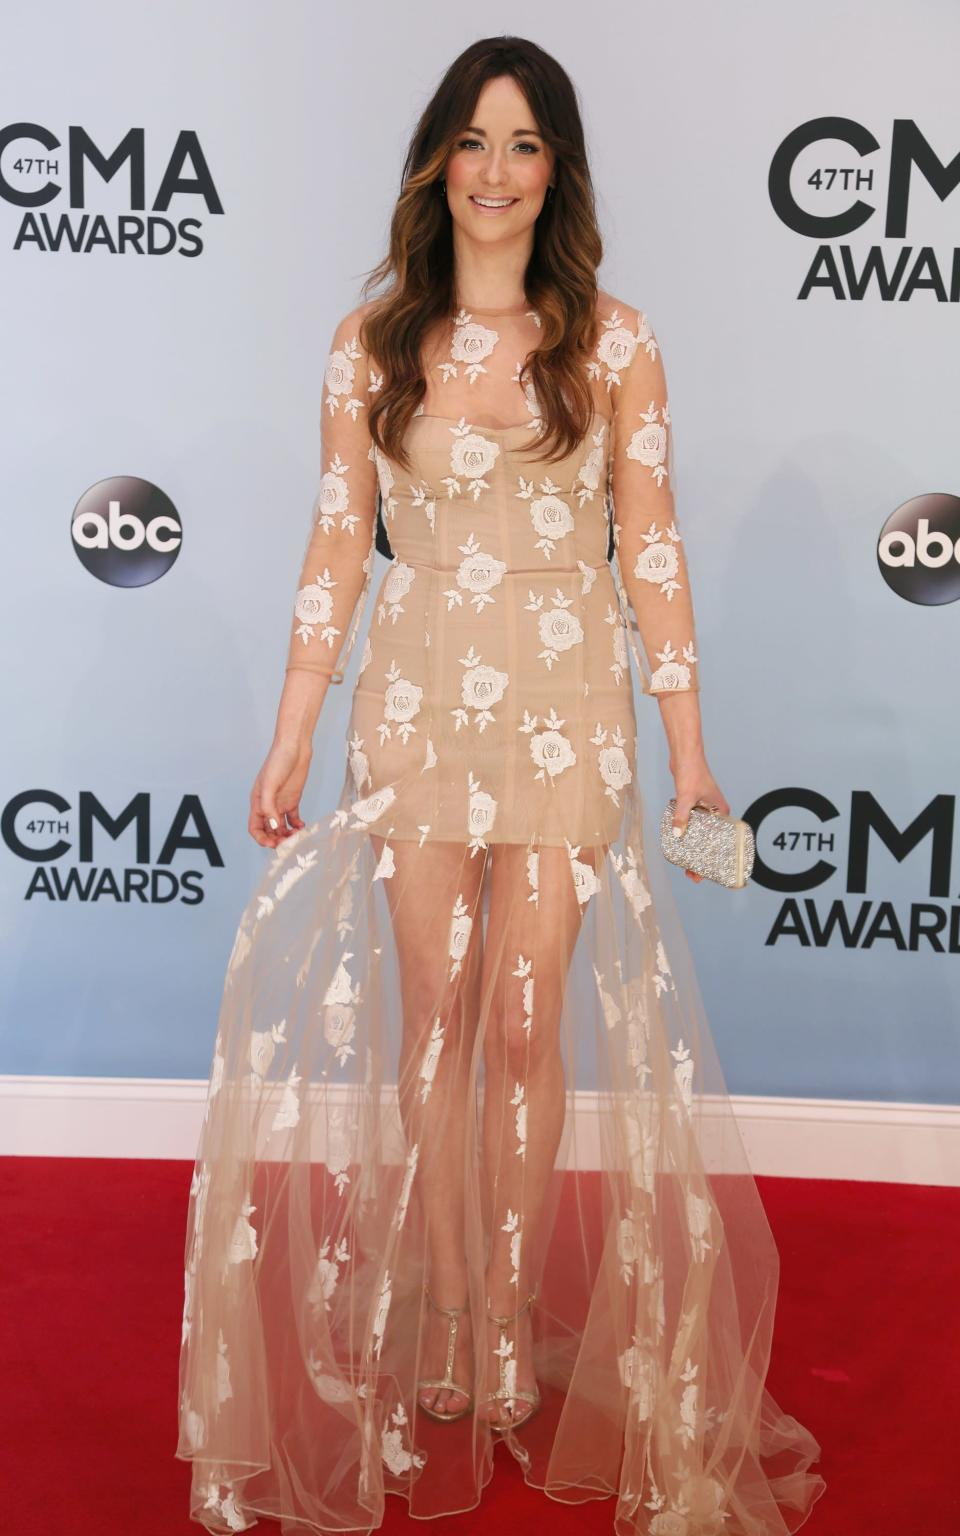 Singer Kacey Musgraves arrives at the 47th Country Music Association Awards in Nashville, Tennessee November 6, 2013. REUTERS/Eric Henderson (UNITED STATES - Tags: ENTERTAINMENT)